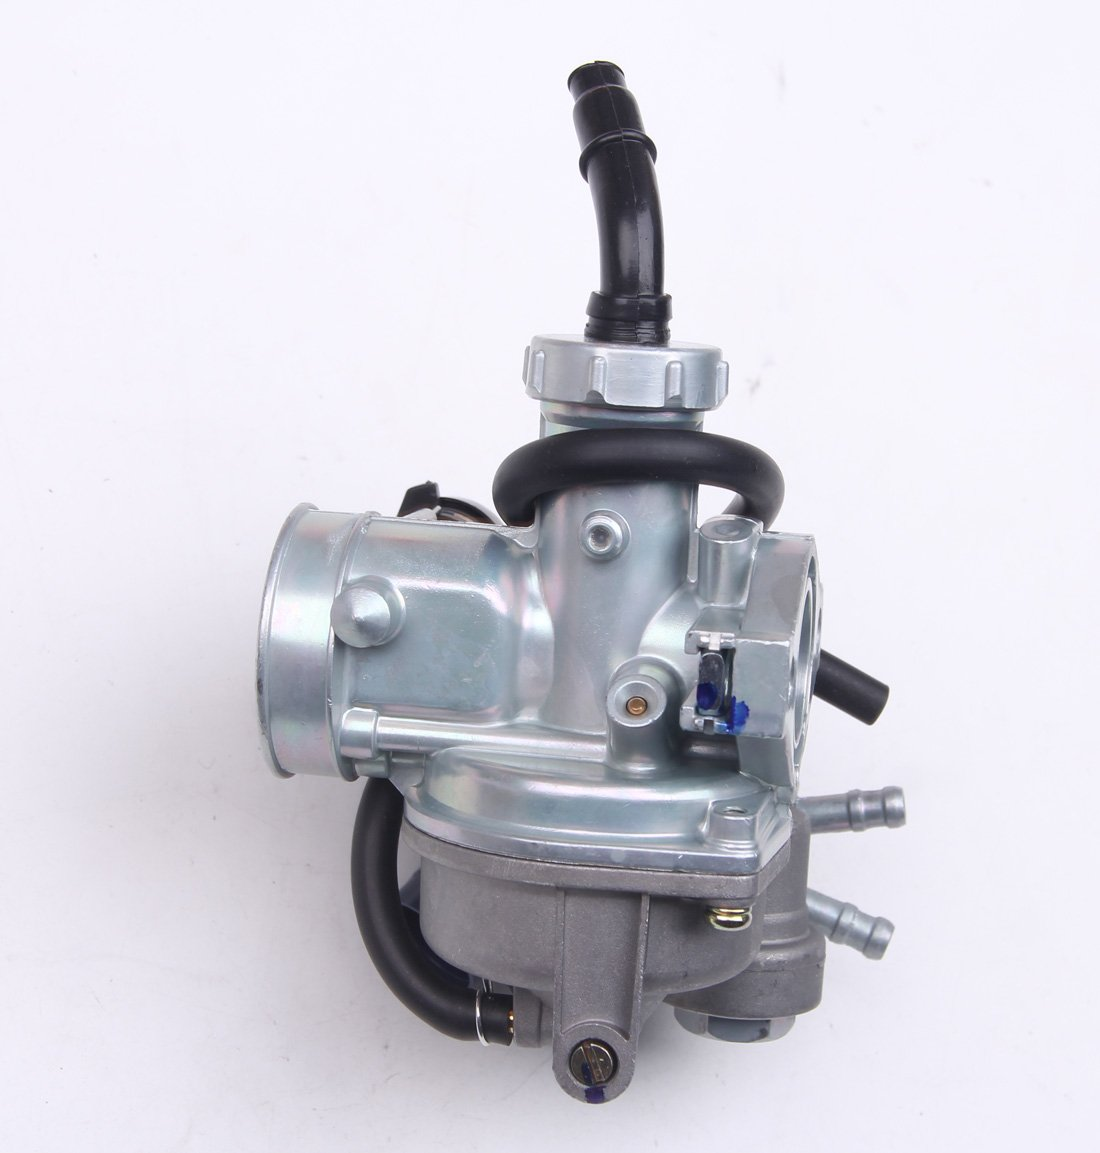 goodfind68 Carburetor Carb for Honda TRX 90 TRX90 Sportrax 90 Carburetor /& Air Filter